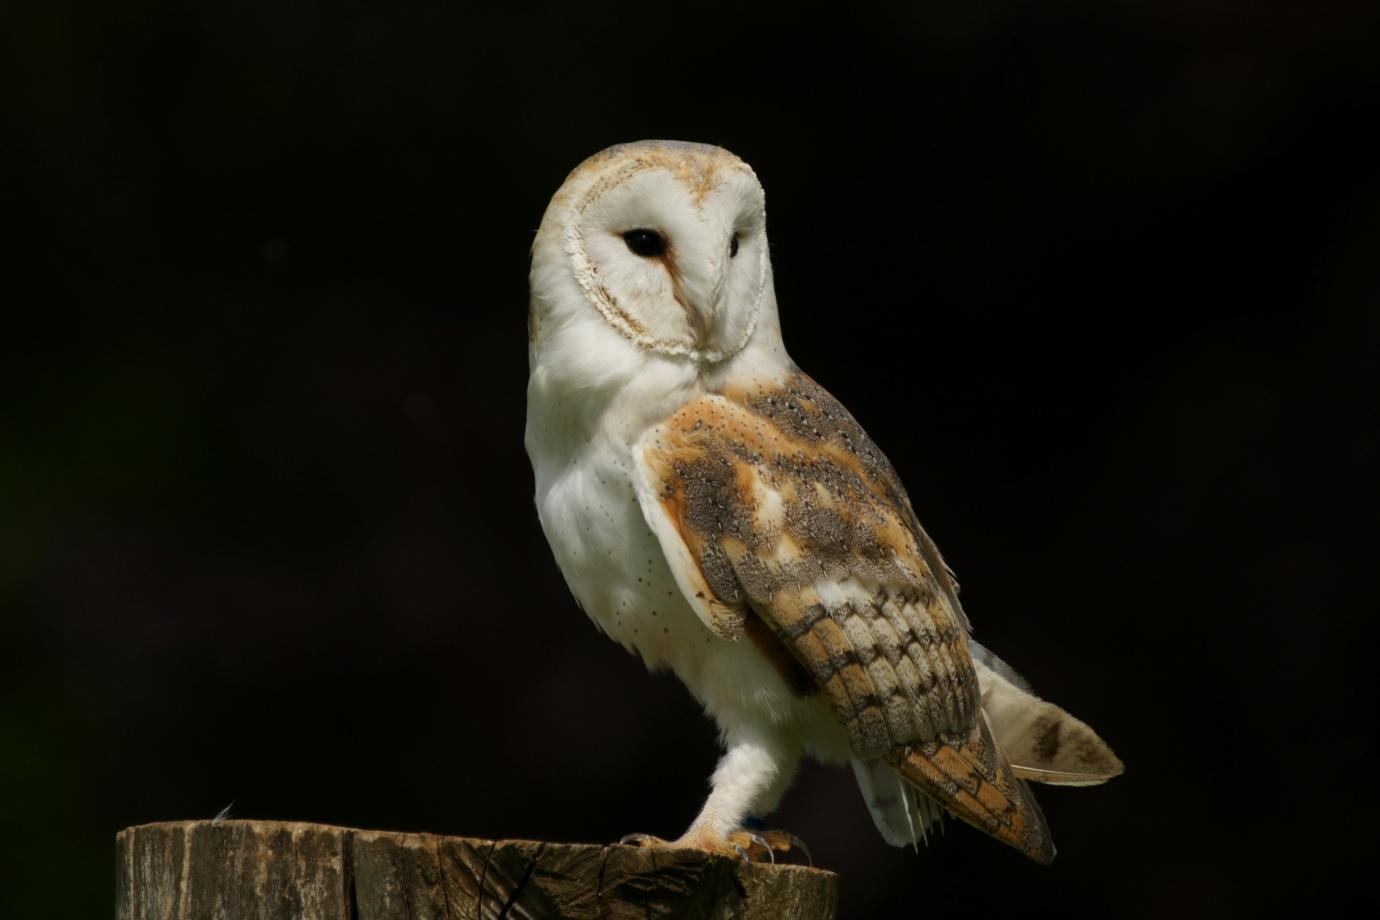 Barn Owl - Facts, Pictures, Diet, Breeding, Habitat, Behaviour ...